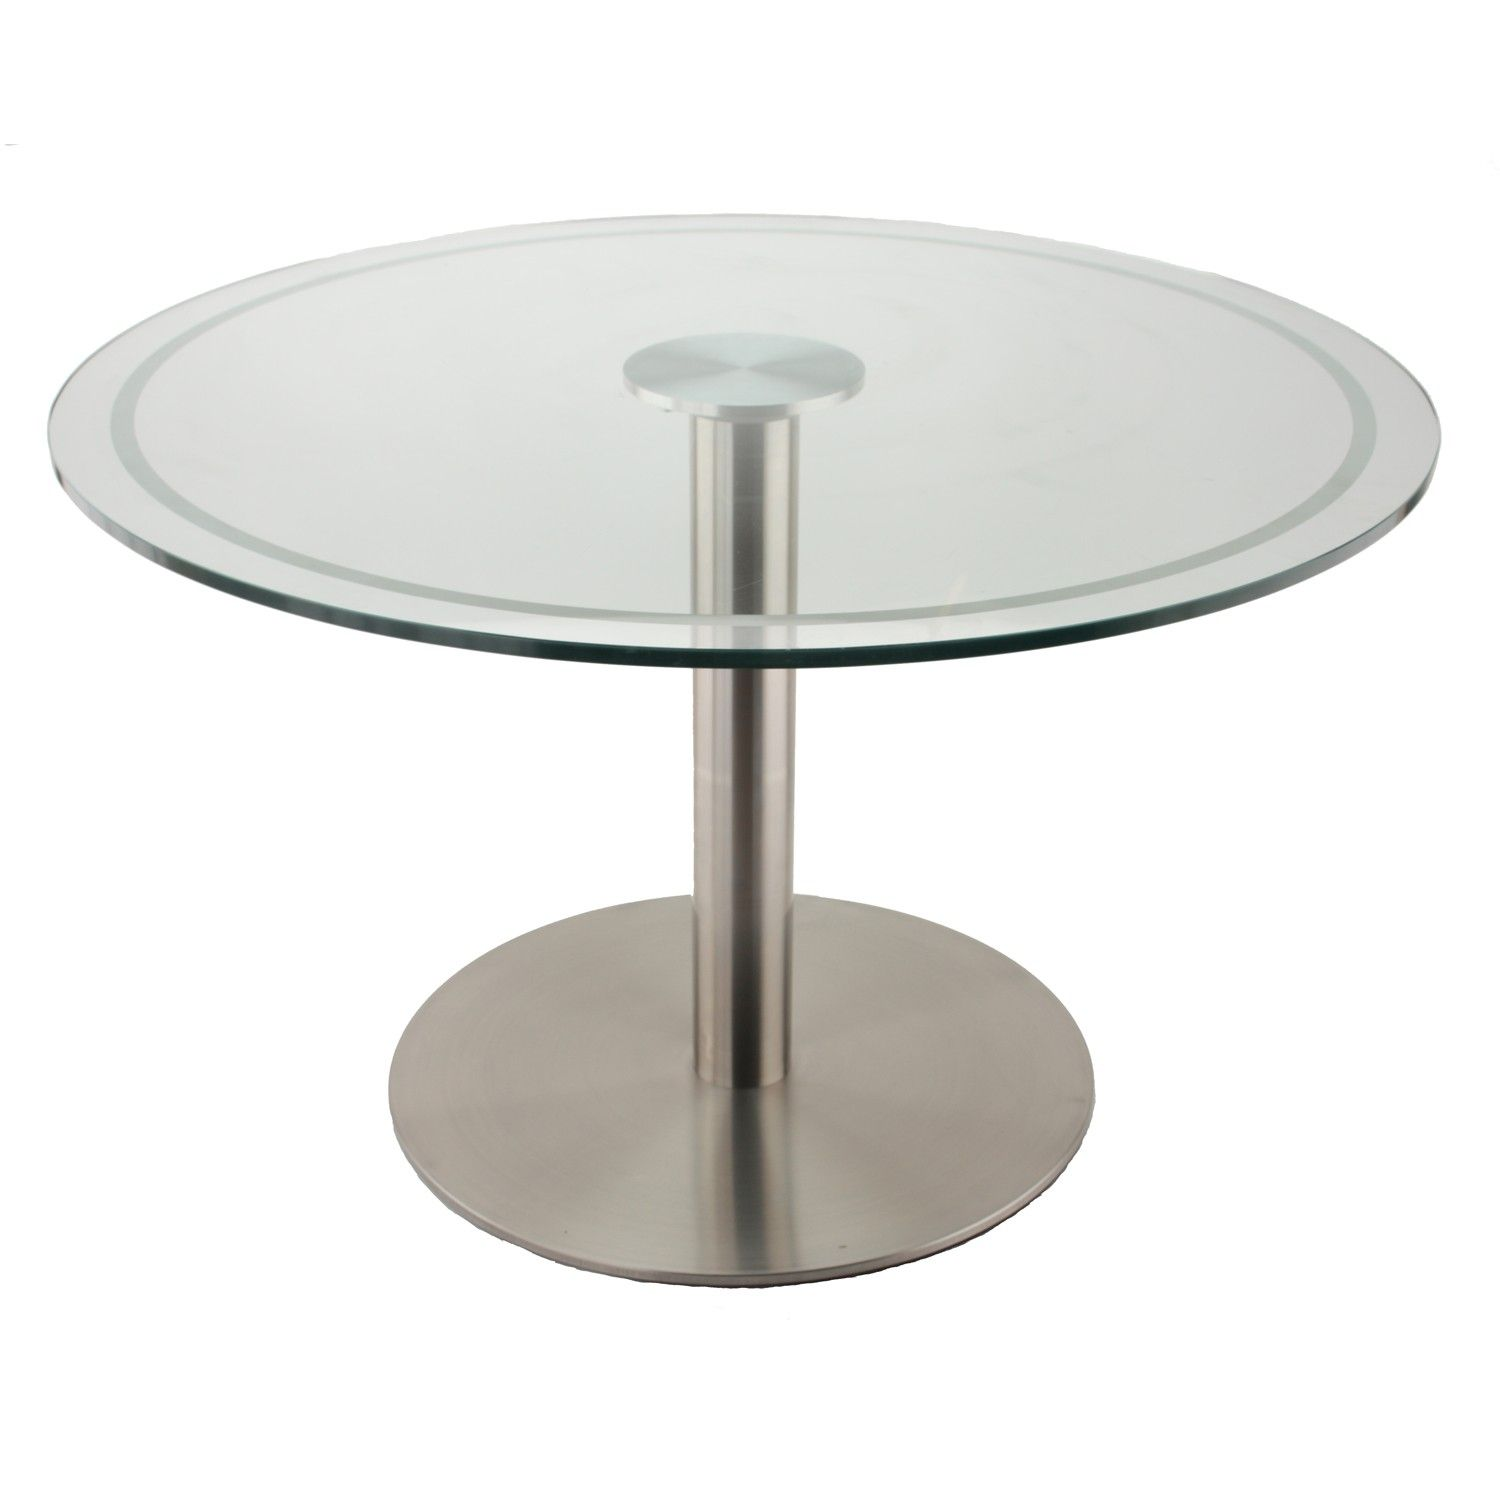 Glass Dining Room Table Bases The Rfl750 Stainless Steel Table Base With Glass Table Top Using